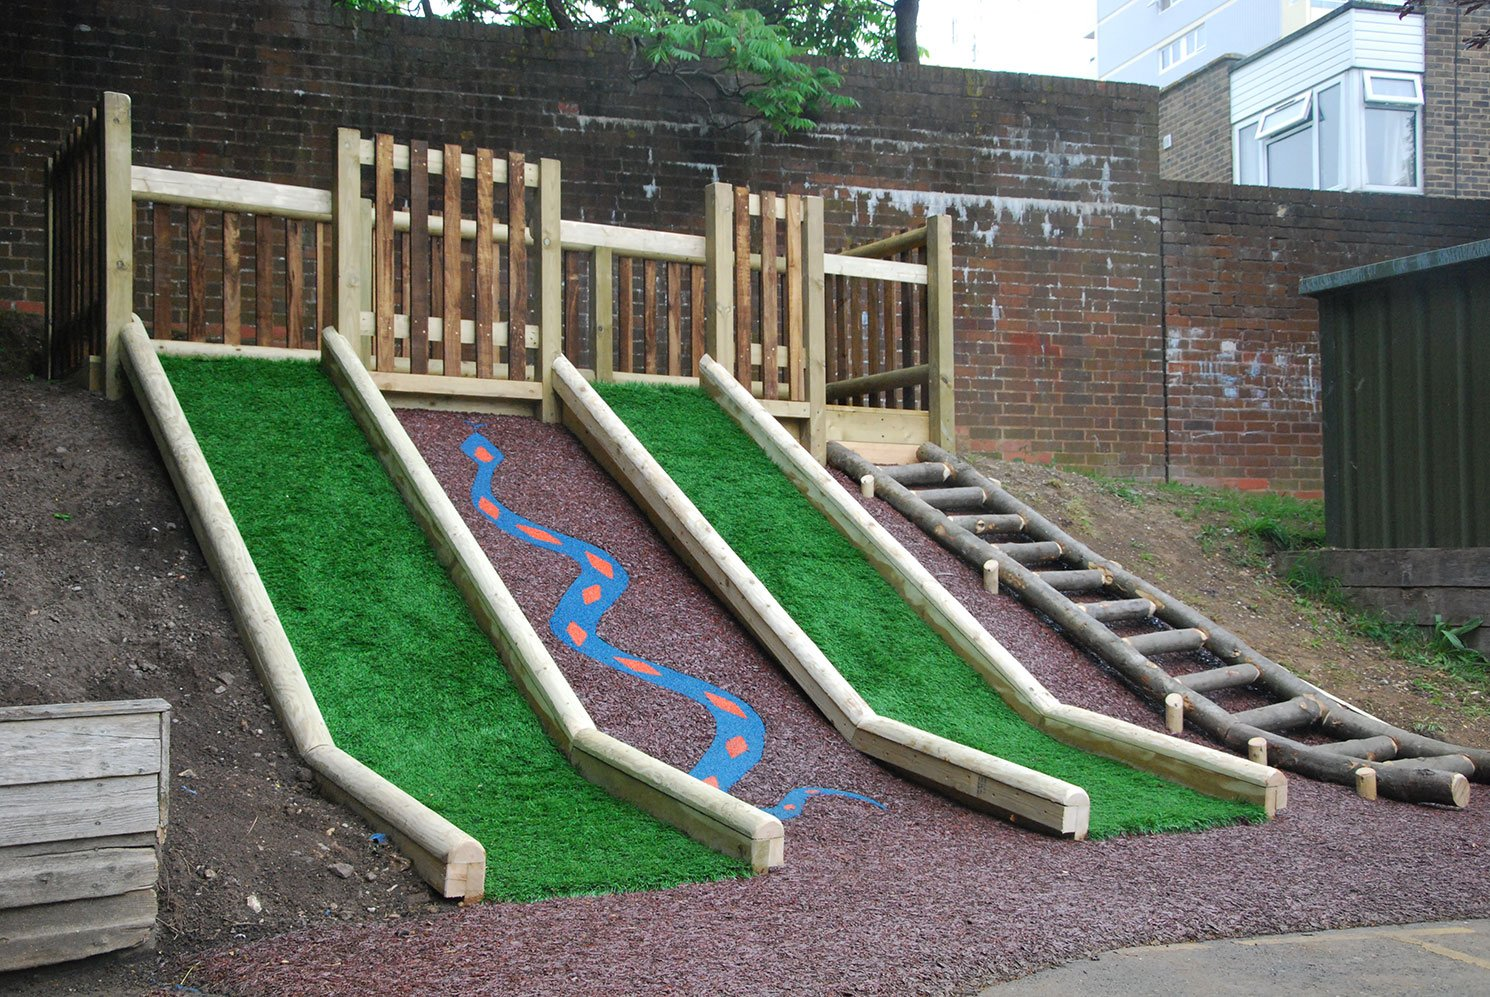 View of the playground for kids